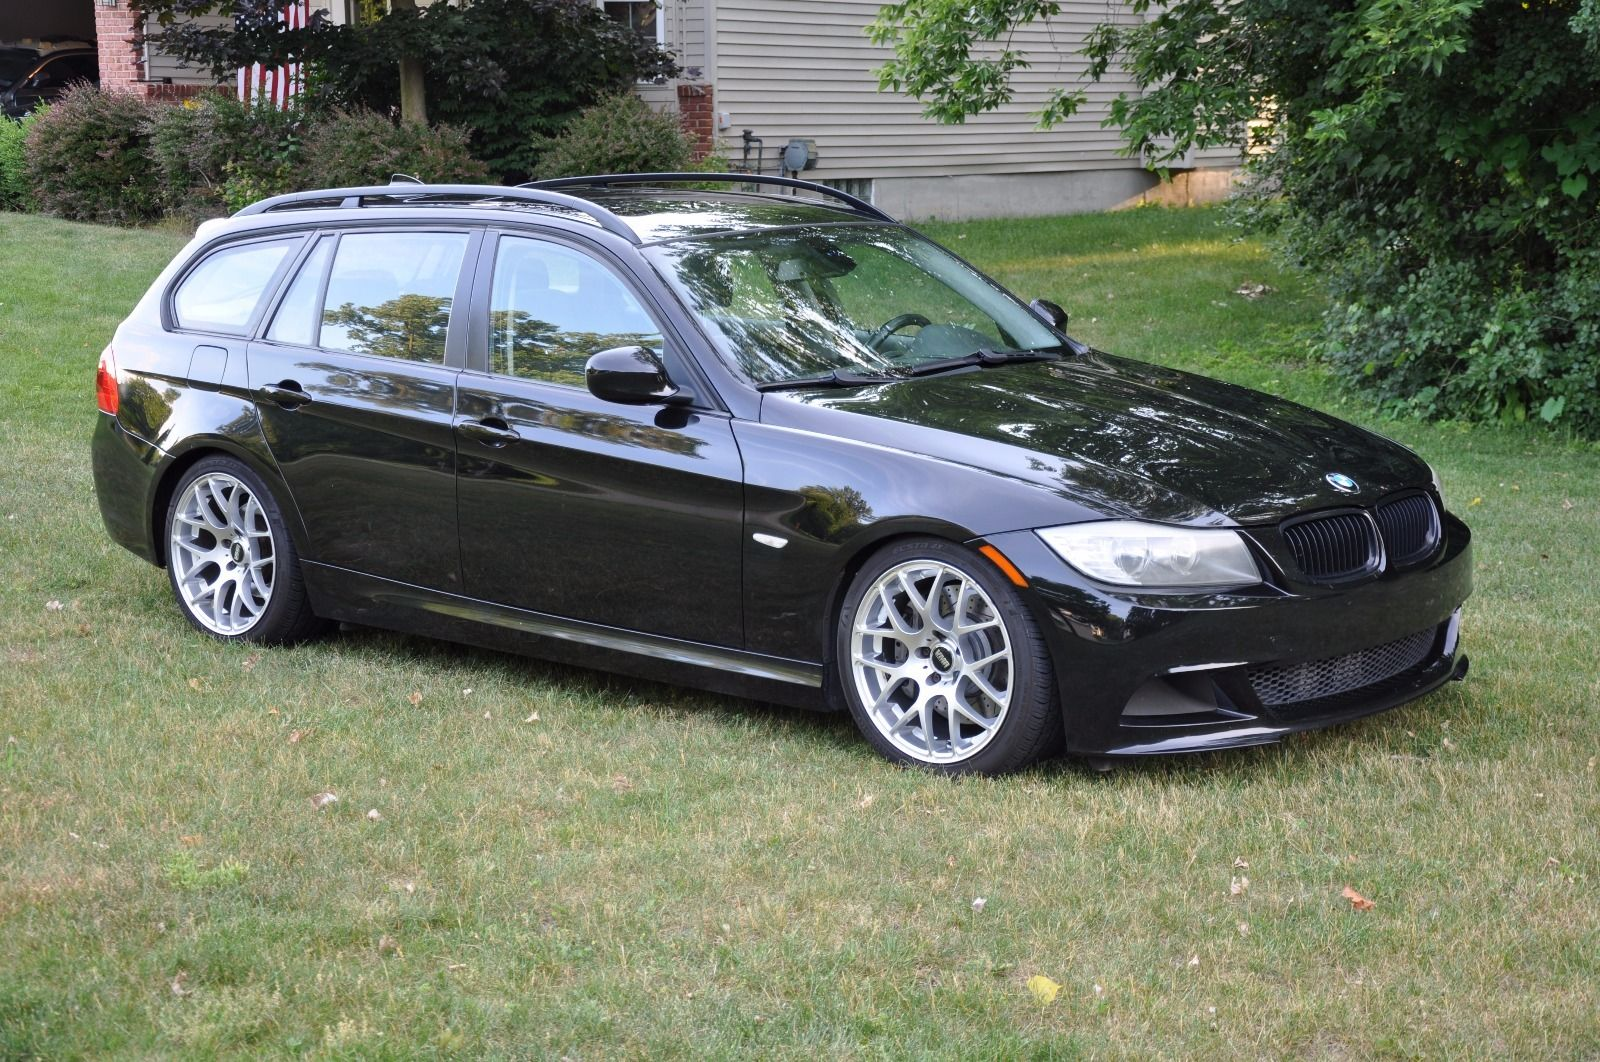 For Sale BMW I Wagon With A Turbo N Engine Swap Depot - Bmw 328i engine